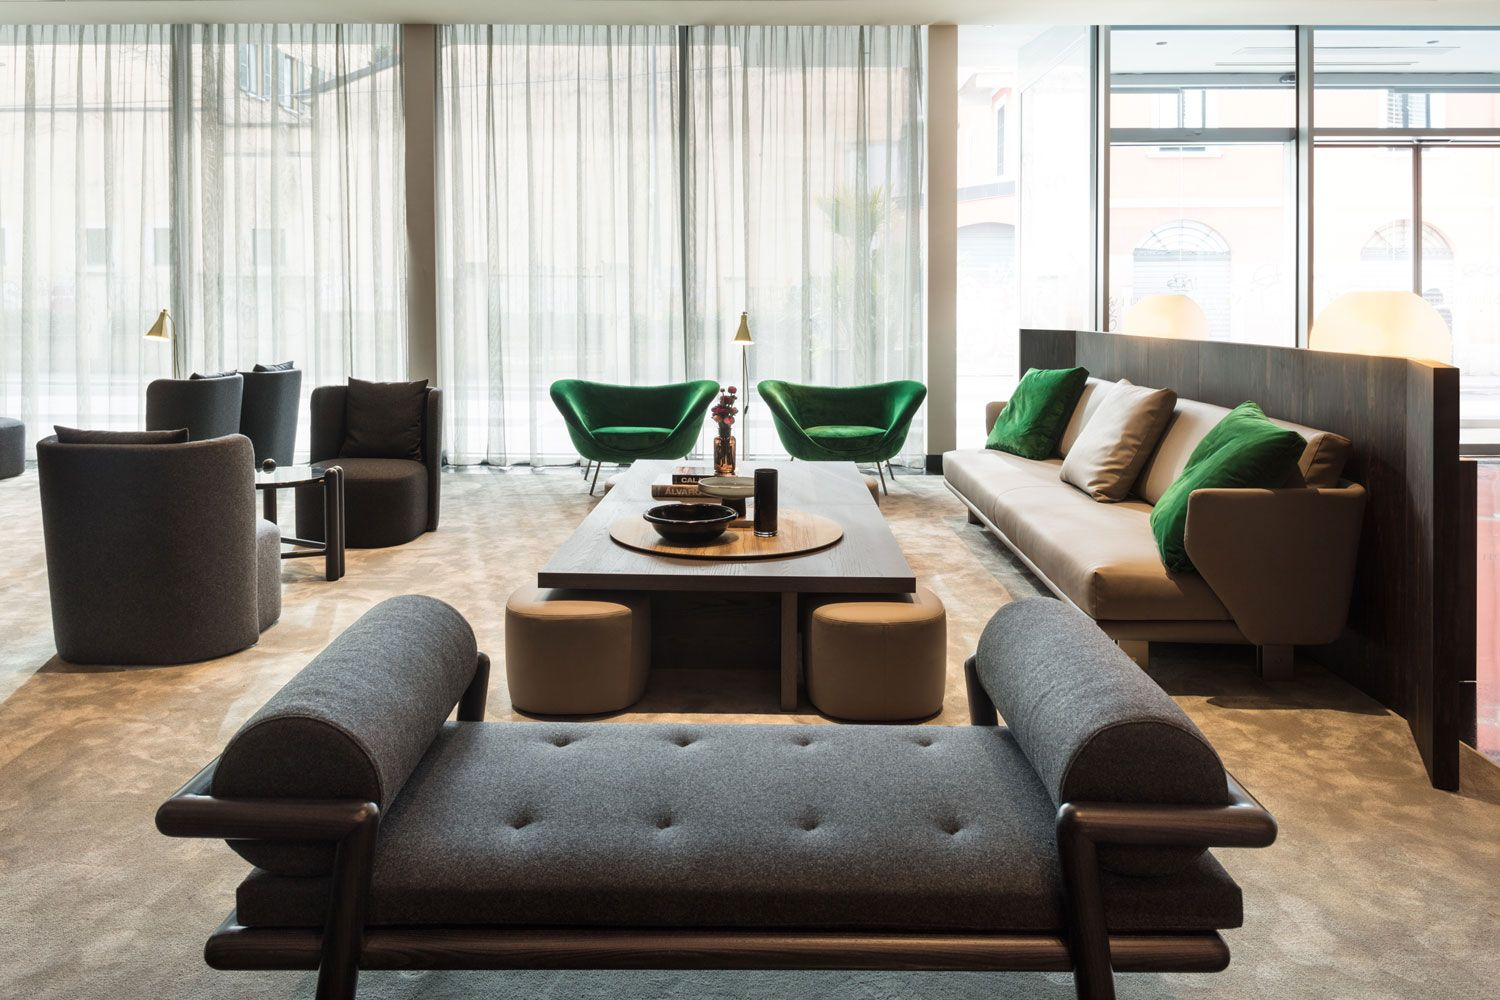 Milantrace2017 Hotel Viu Milan By Arassociati And Interiors By